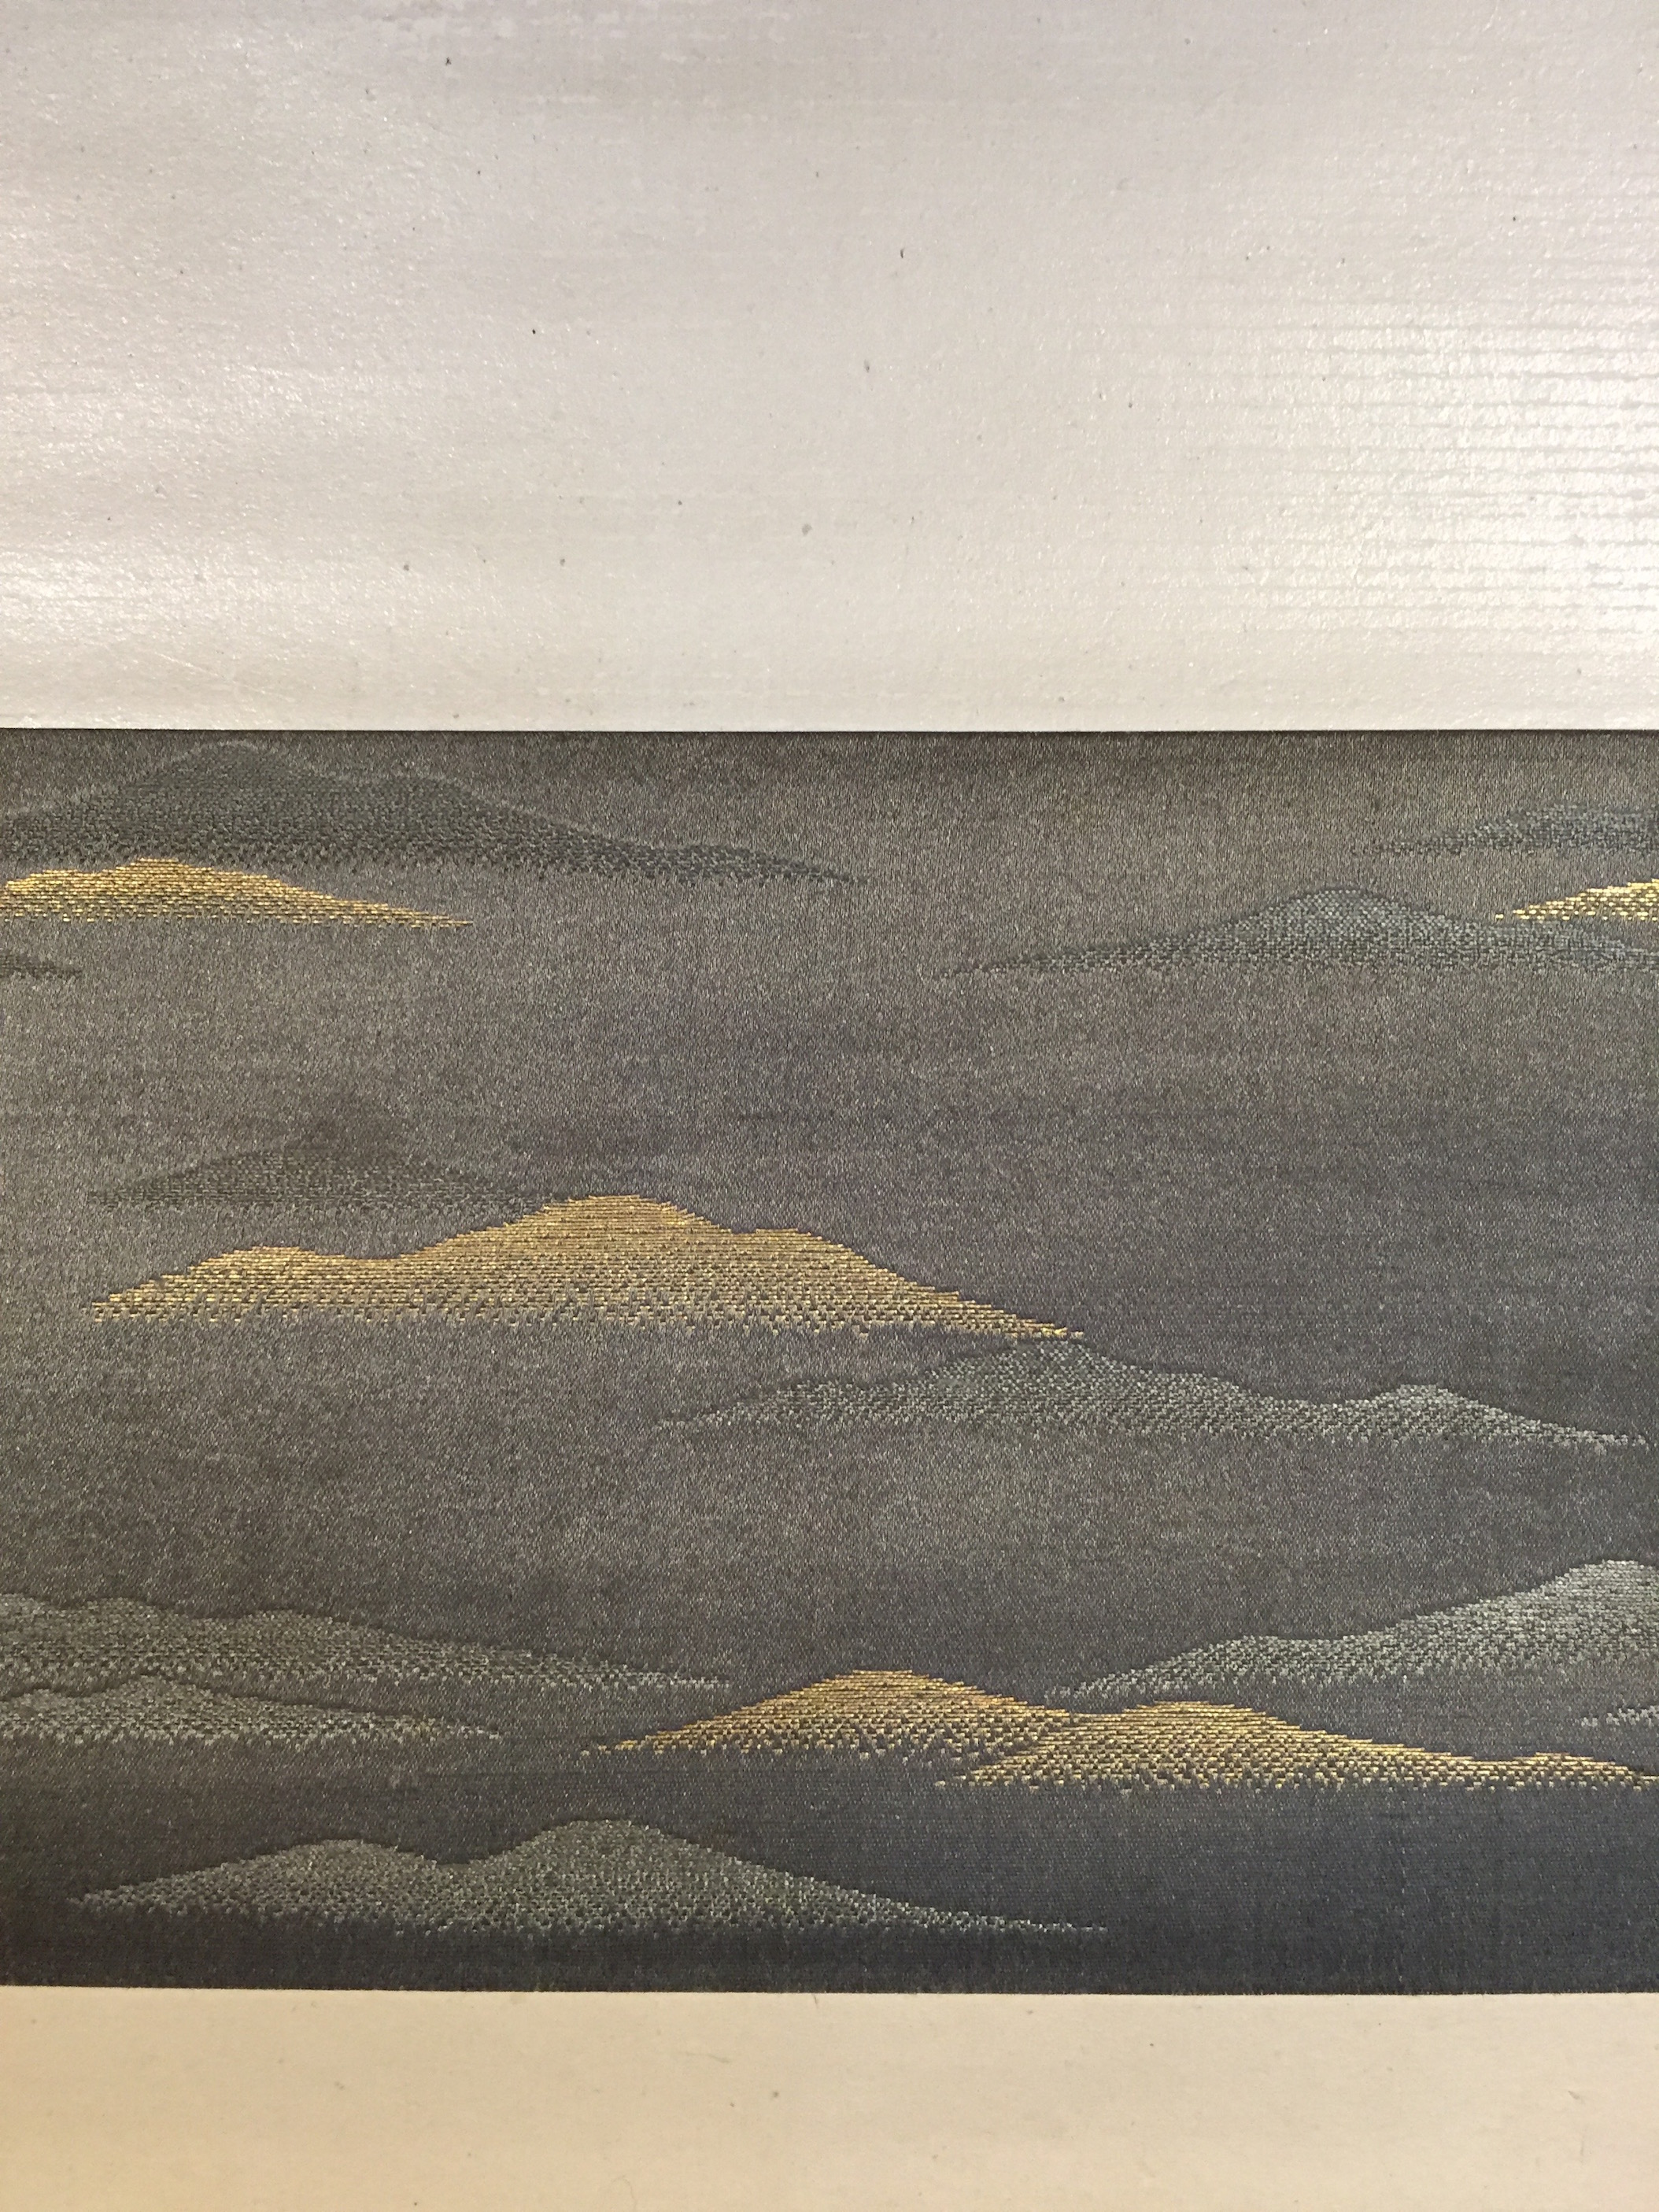 The mounting, in a neutral hue, includes a strip of mountain-patterned fabric in gold and silver around the artwork, making one imagine that the waterfall is deep in the mountains.